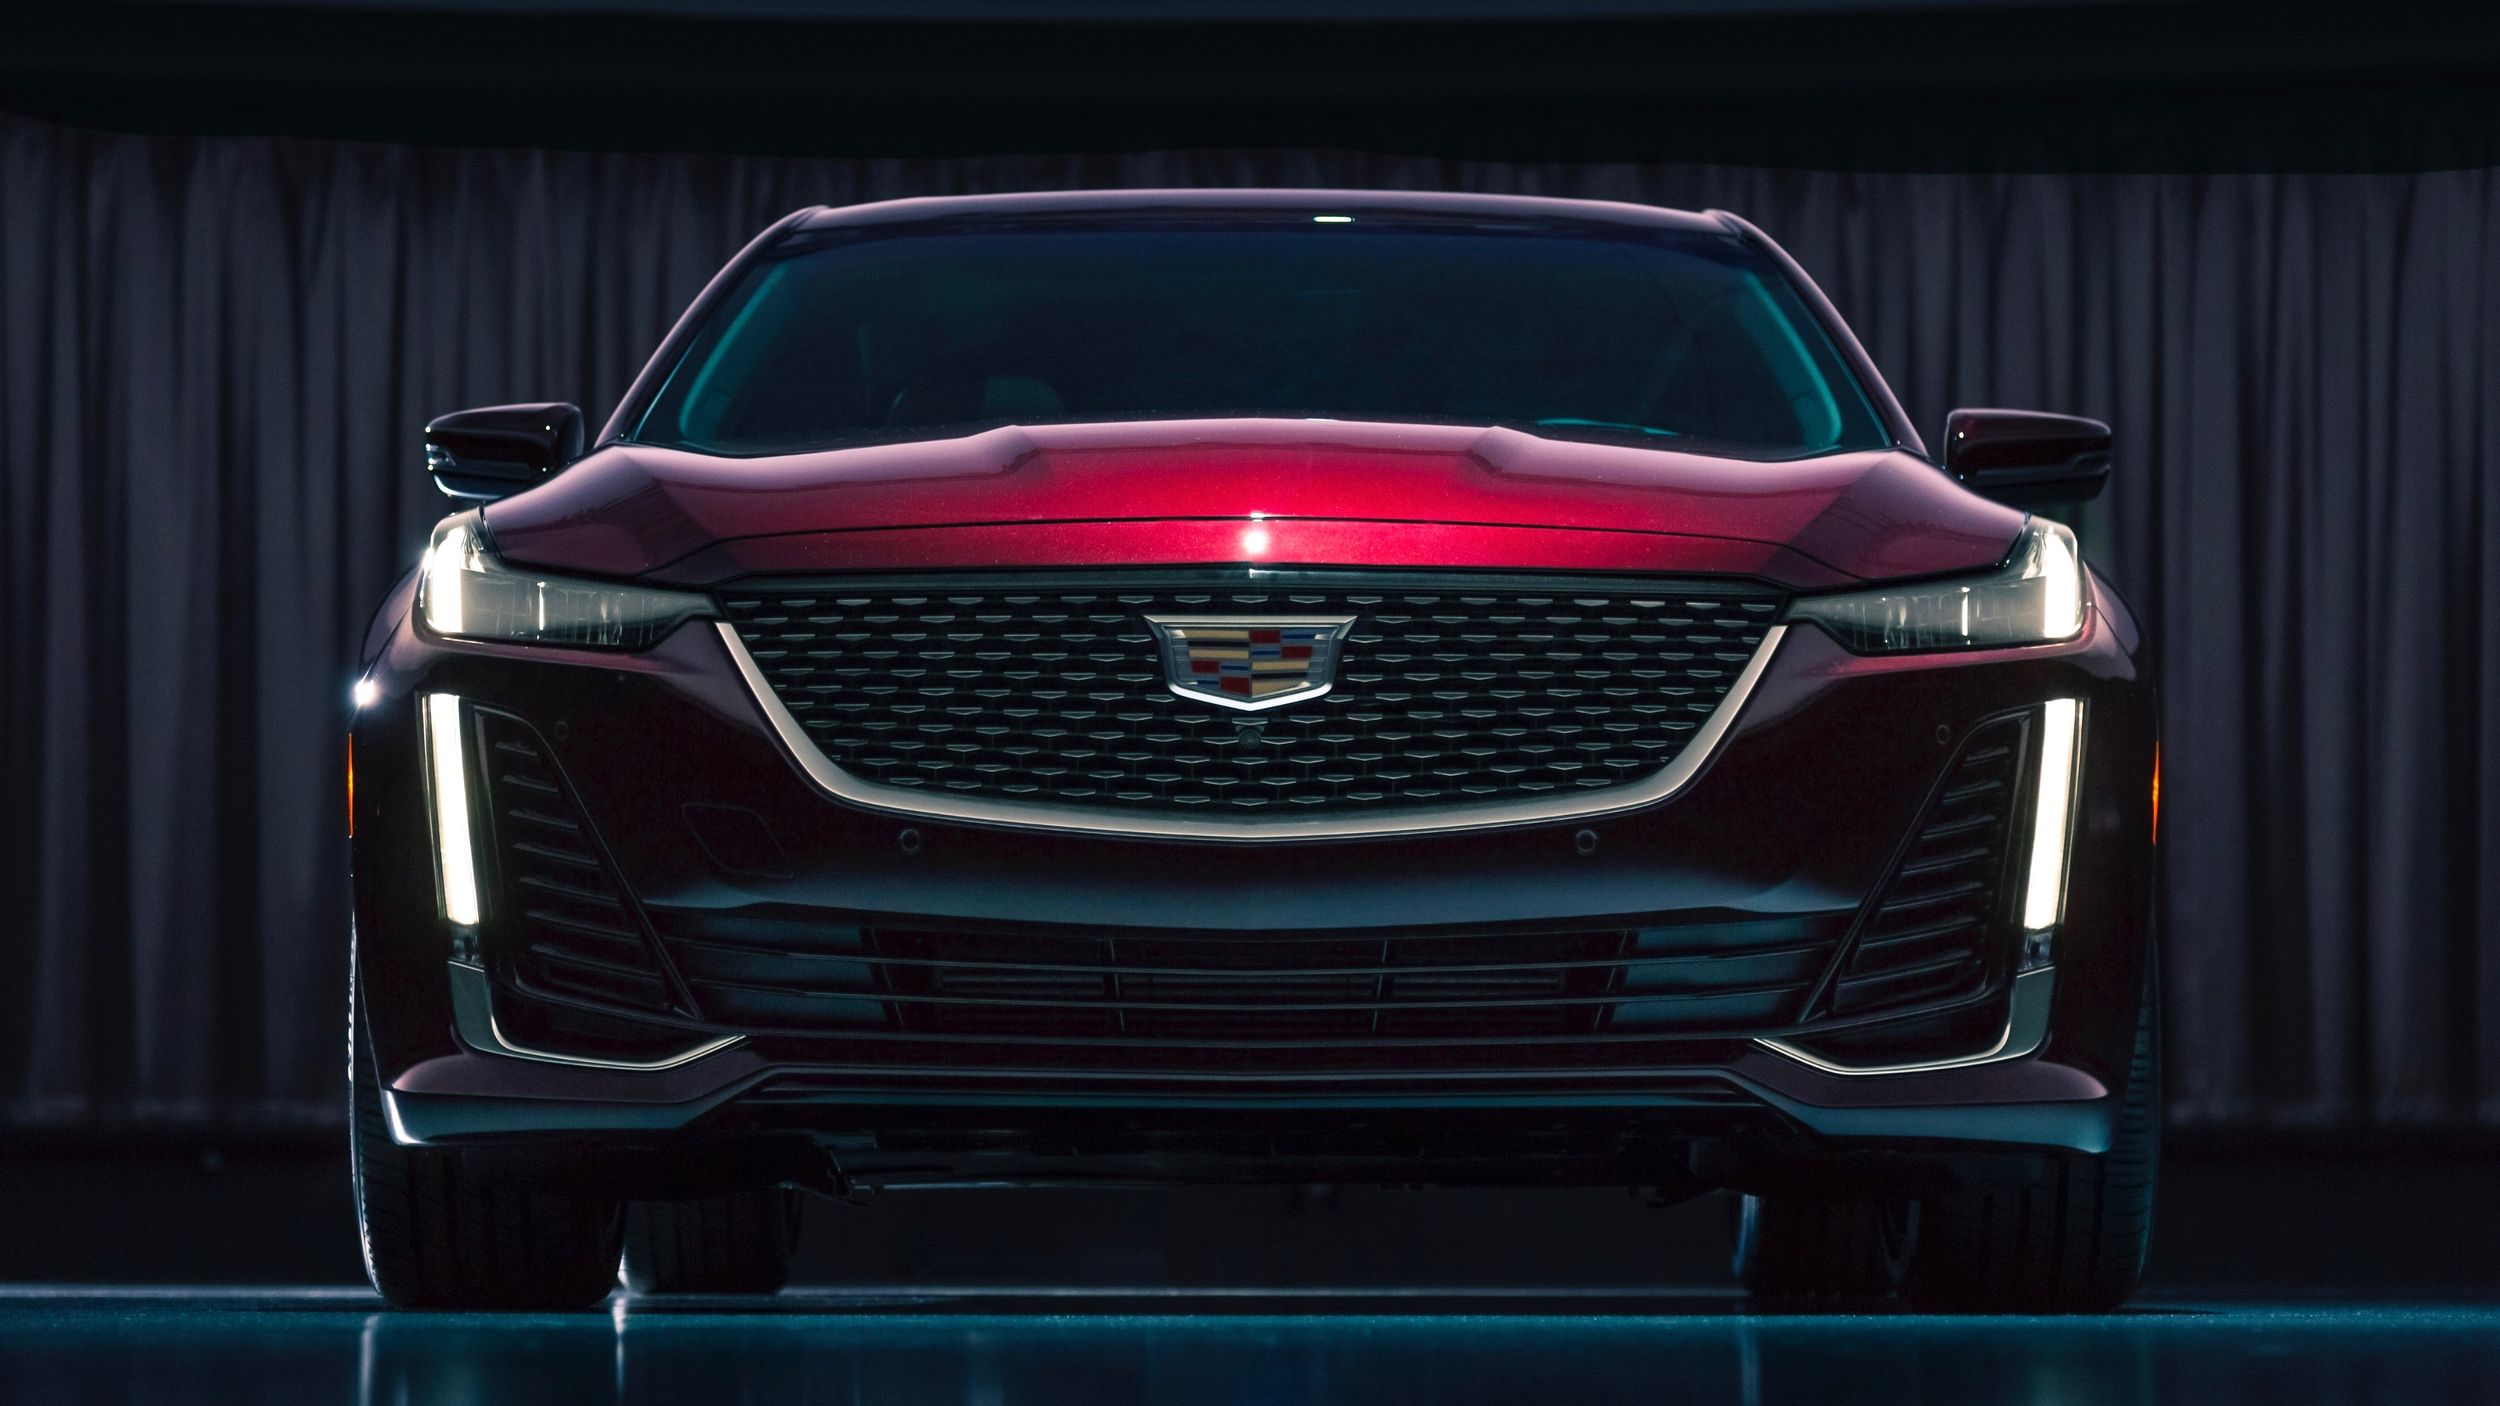 2020 Cadillac CT5 revealed, engines announced | Autoblog